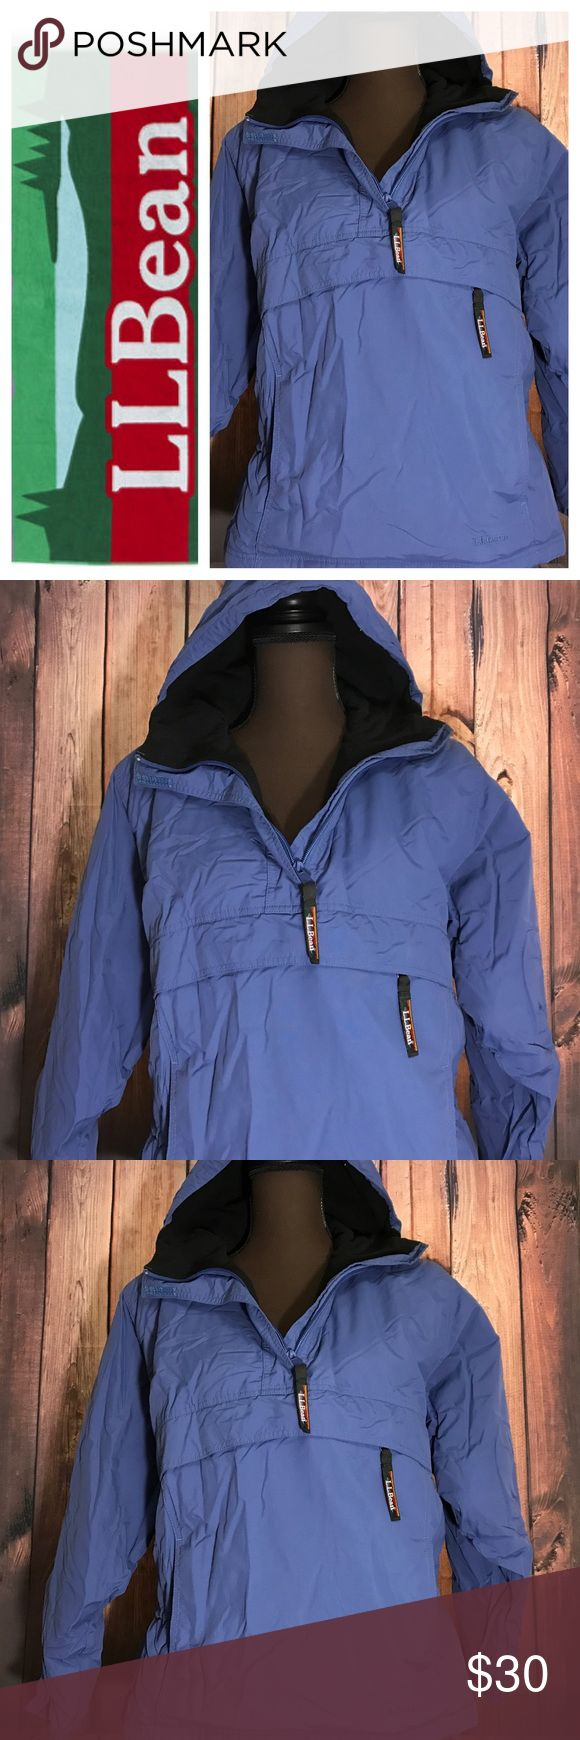 Blue Hoodie LL Bean Women SP L.L. Bean brand for women Hoodie jacket 1/4 zip up With front  zip up pocket Elastic waist Size small petite Length 24.5 inches Pit to pit 22 inches Good condition  (F) L.L. Bean Jackets & Coats